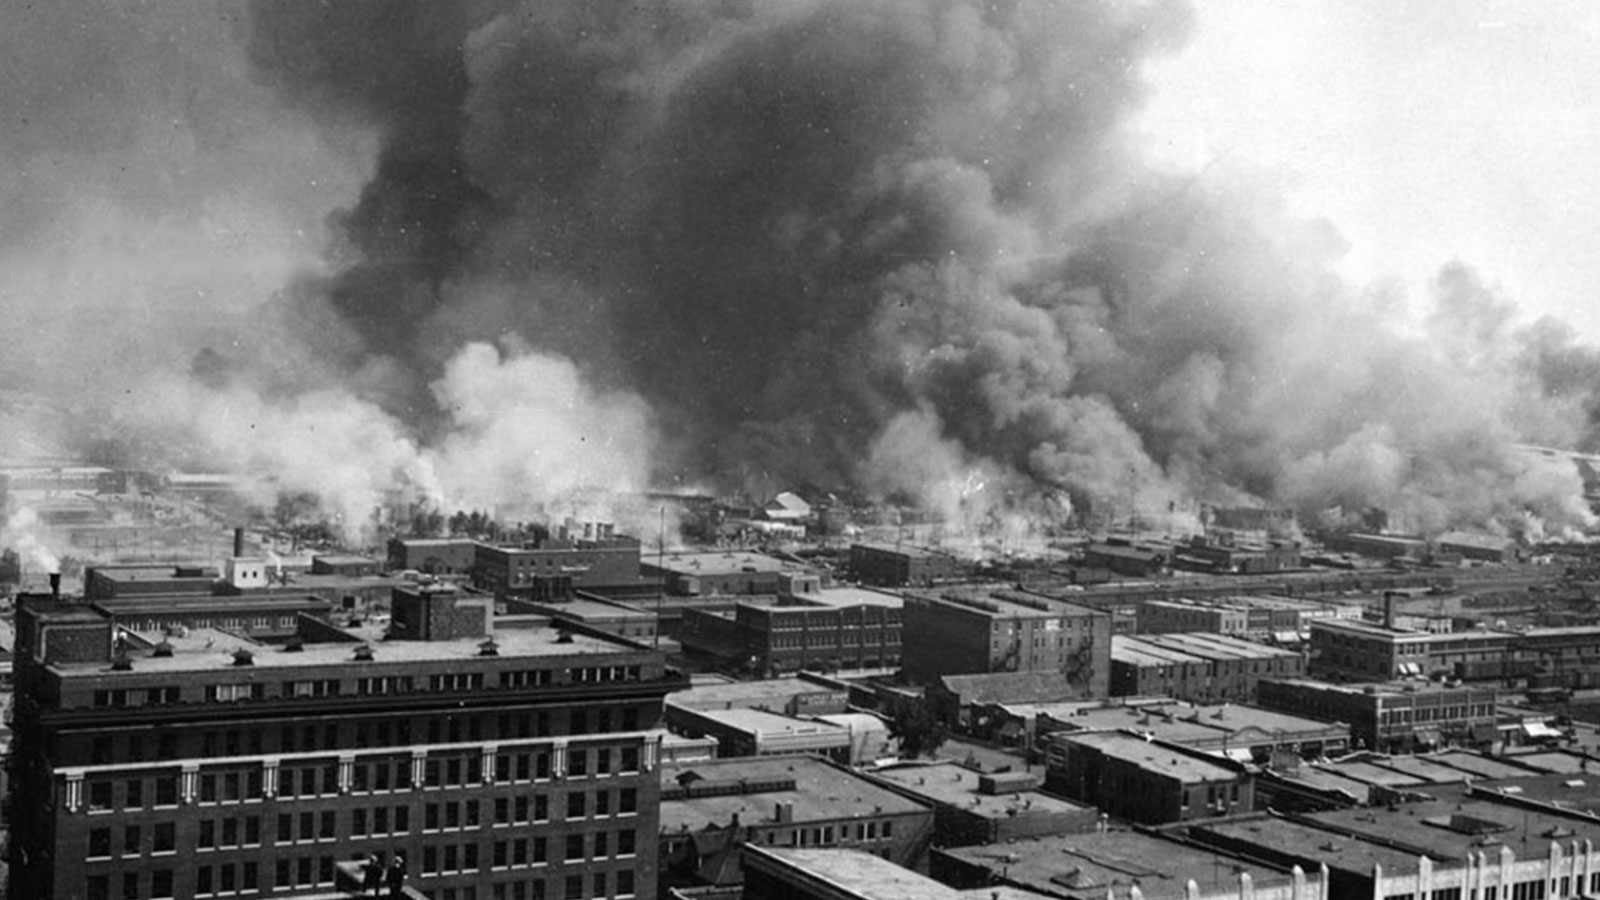 The 1921 Tulsa race massacre wrought widespread destruction. In addition to acknowledging the horror of that particular event, we must confront the systemic, genocidal, state-sanctioned, racist violence that is pervasive in the United States.